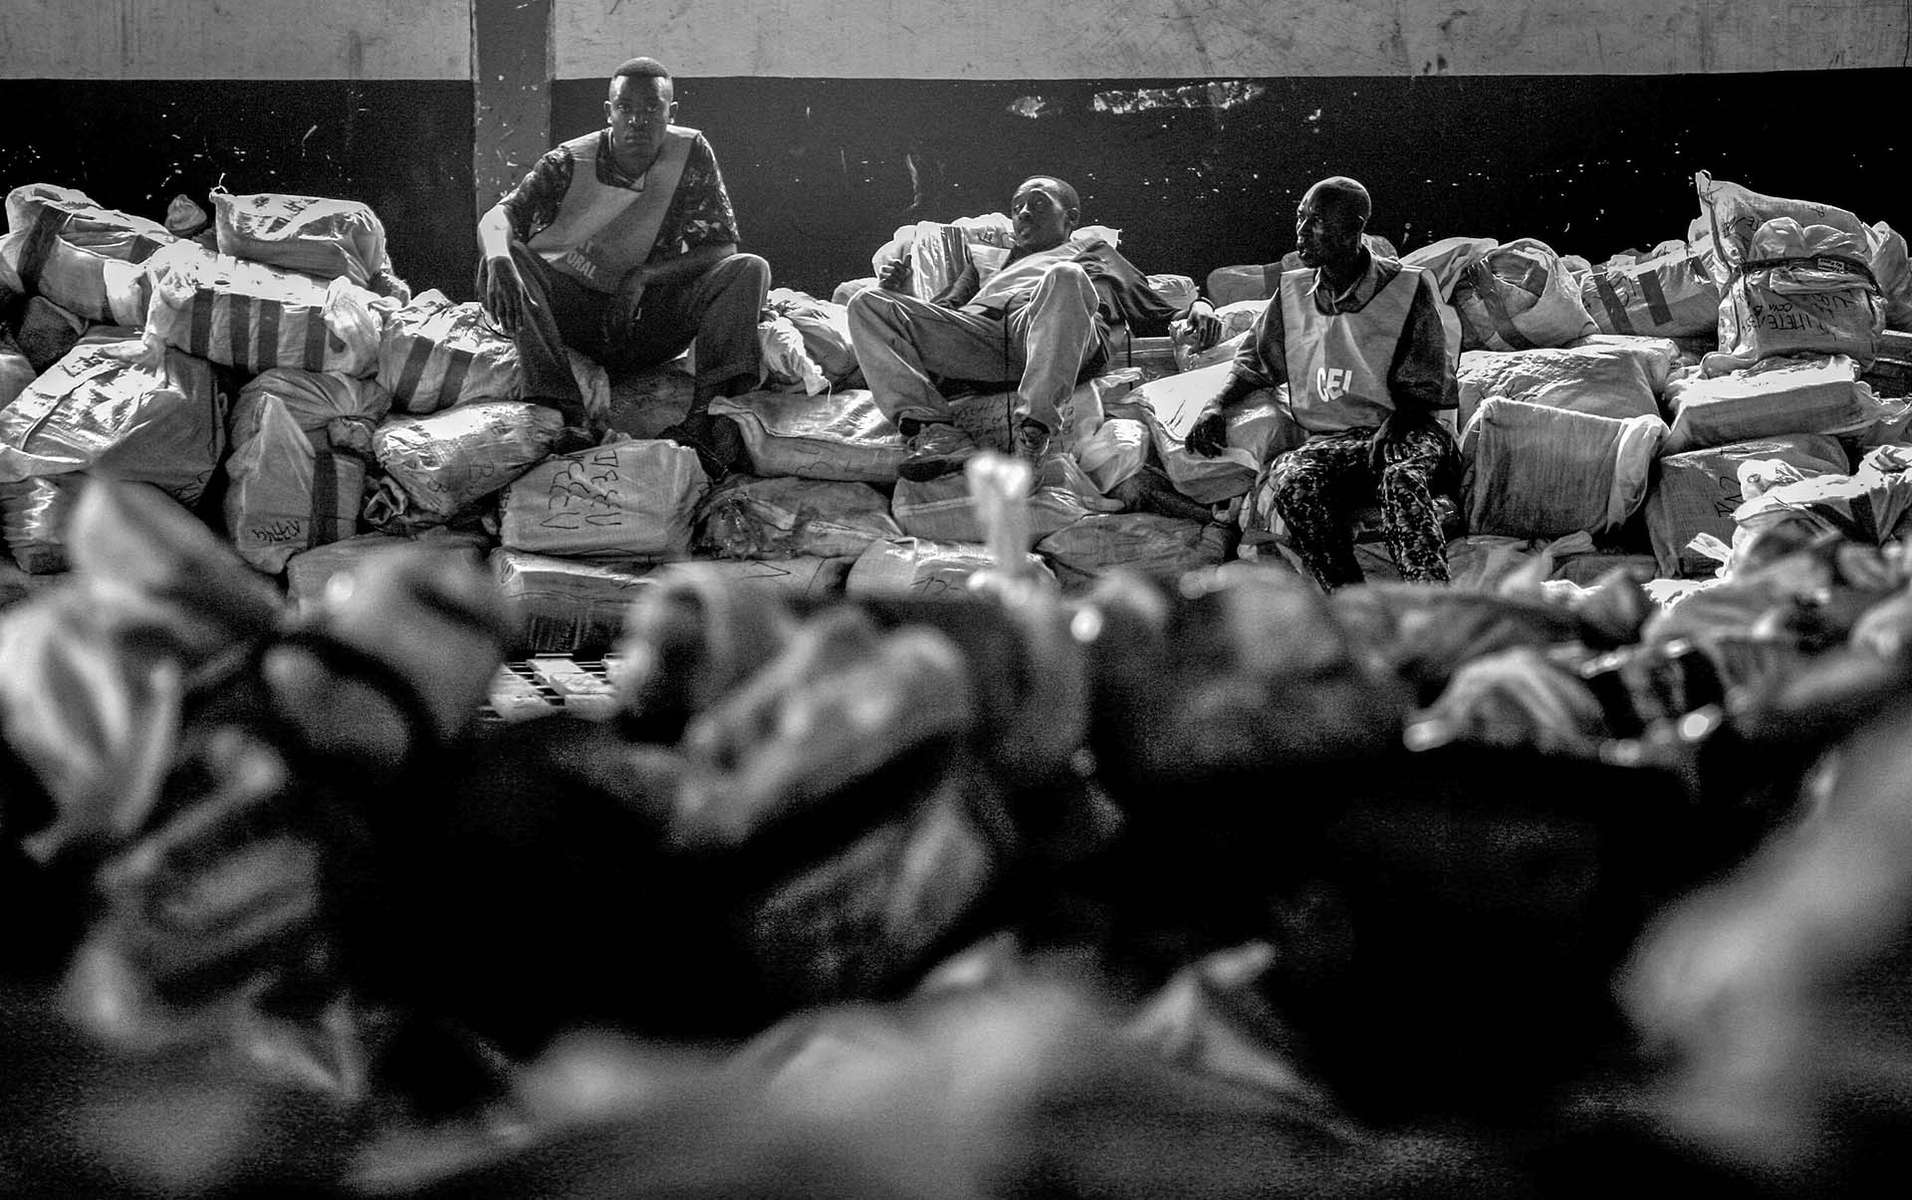 A tired electoral worker take a brake from sorting ballots for being accounted and recorded at a heavily guarded storage facility in Kinshasa Tuesday, October 31, 2006.